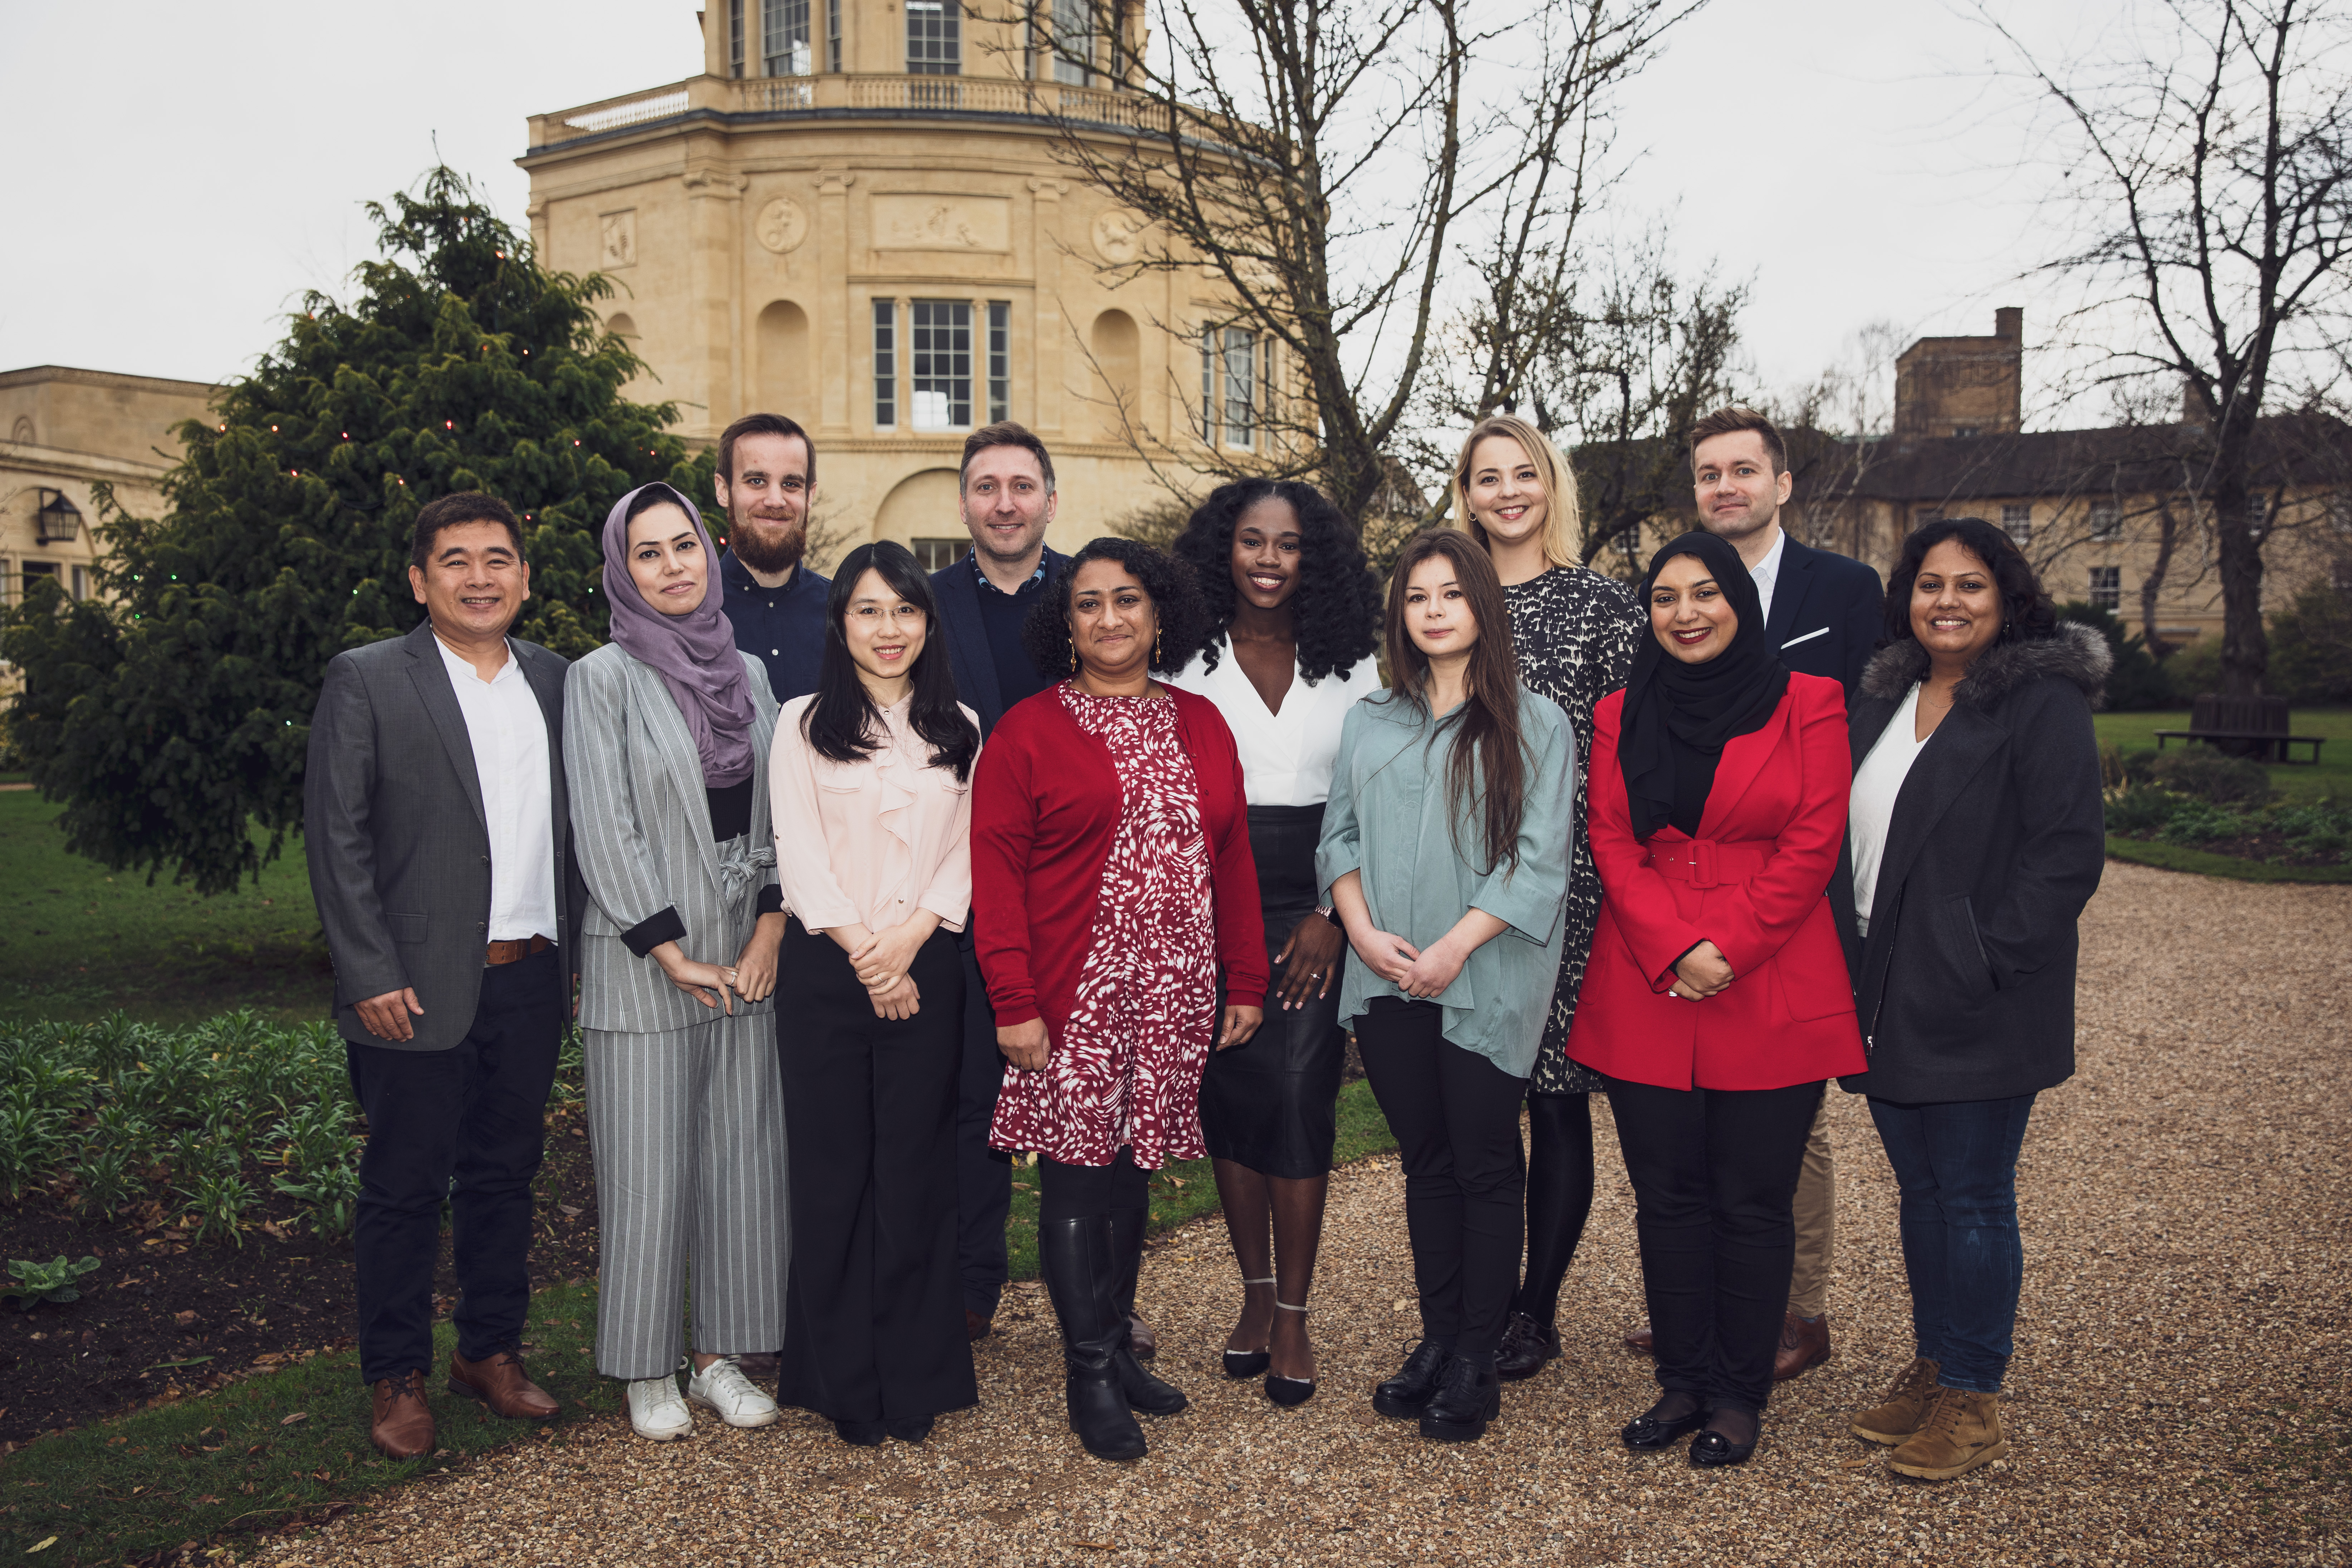 Reuters Institute for the Study of Journalism. Journalist Fellows in 2018 with Meera Selva